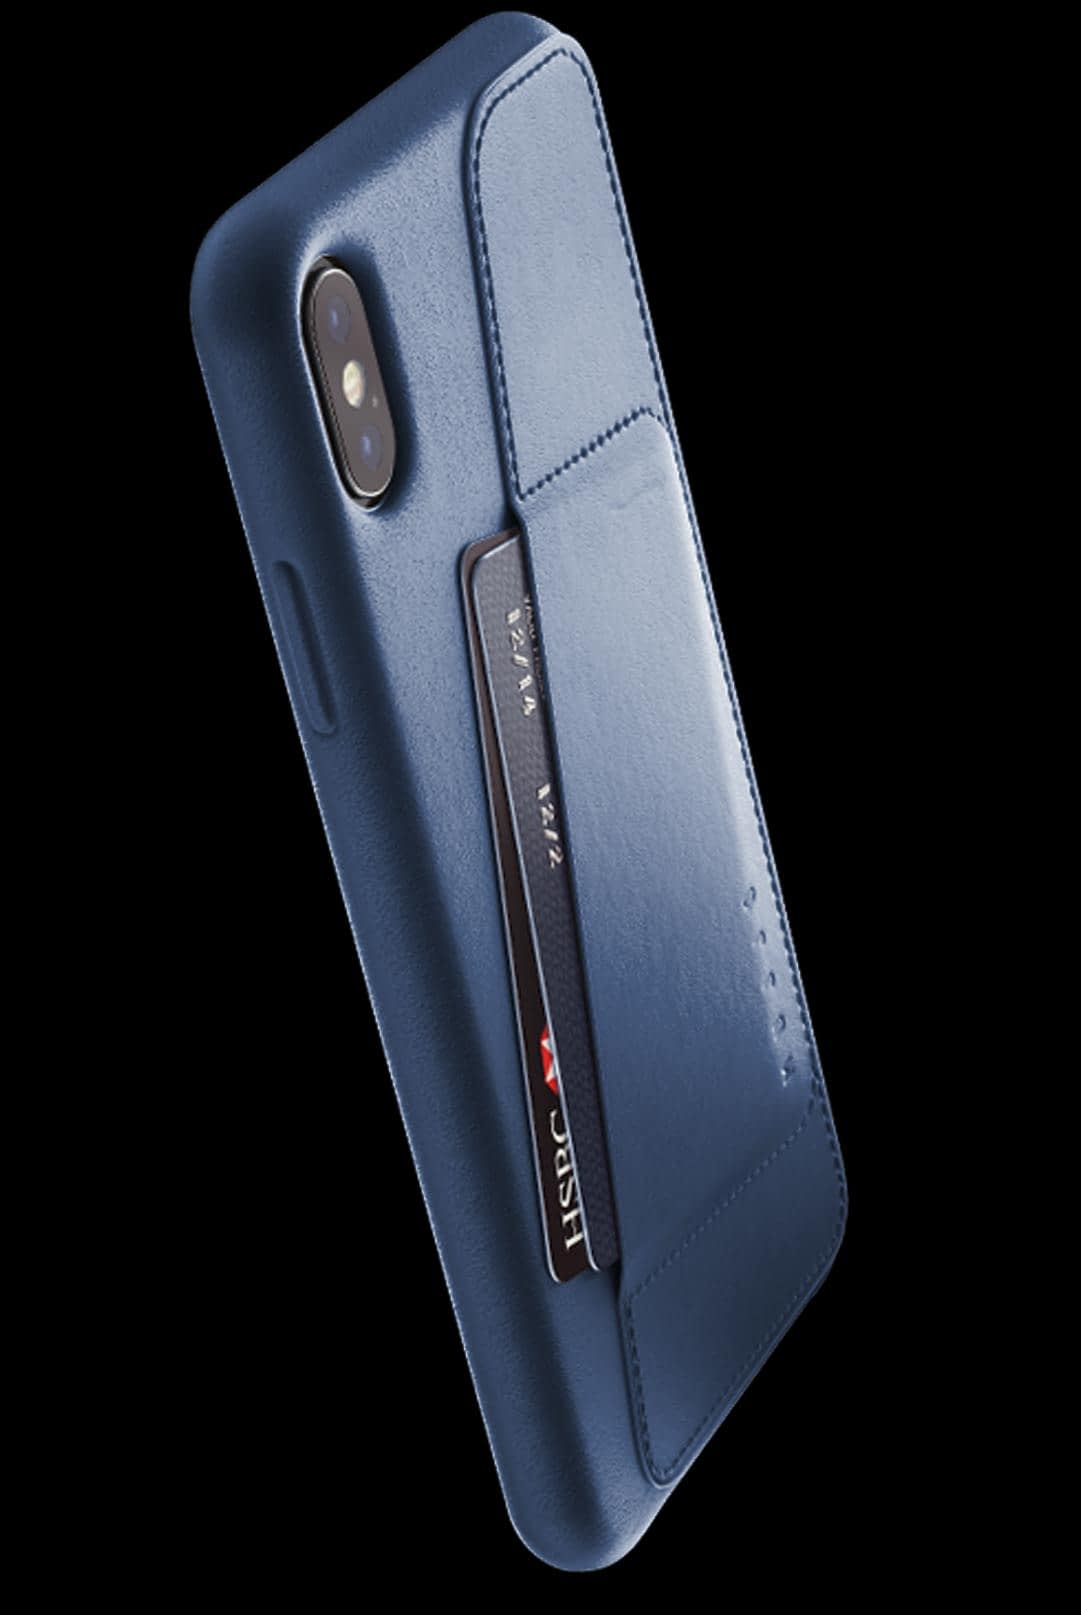 full leather wallet case for iphone Xs Max blue 002